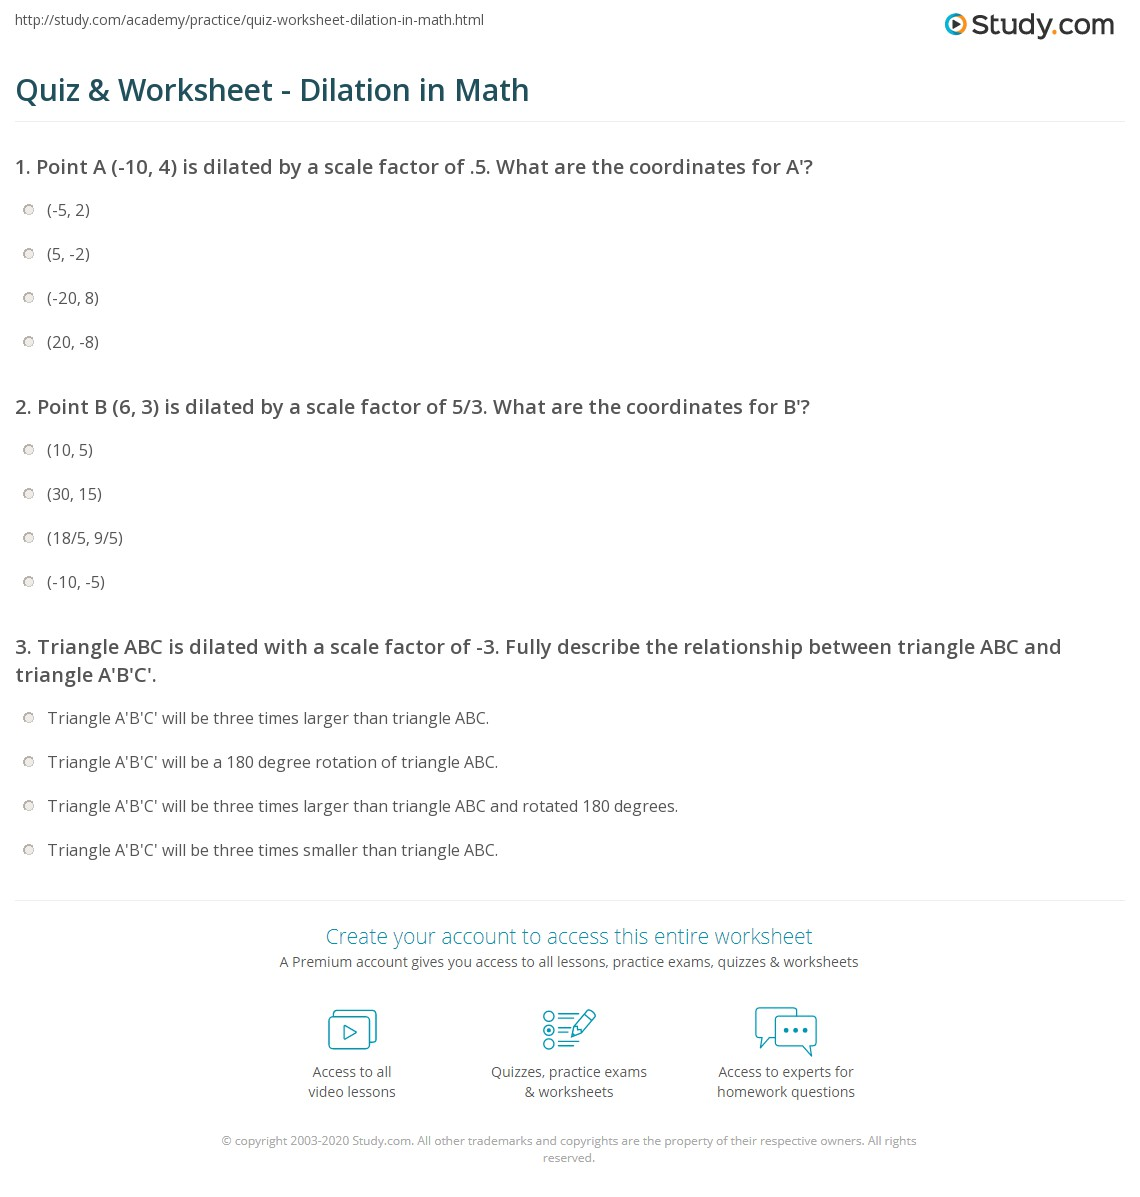 Worksheet Dilations Worksheet dilations worksheet lesson 3 delwfg com quiz dilation in math study